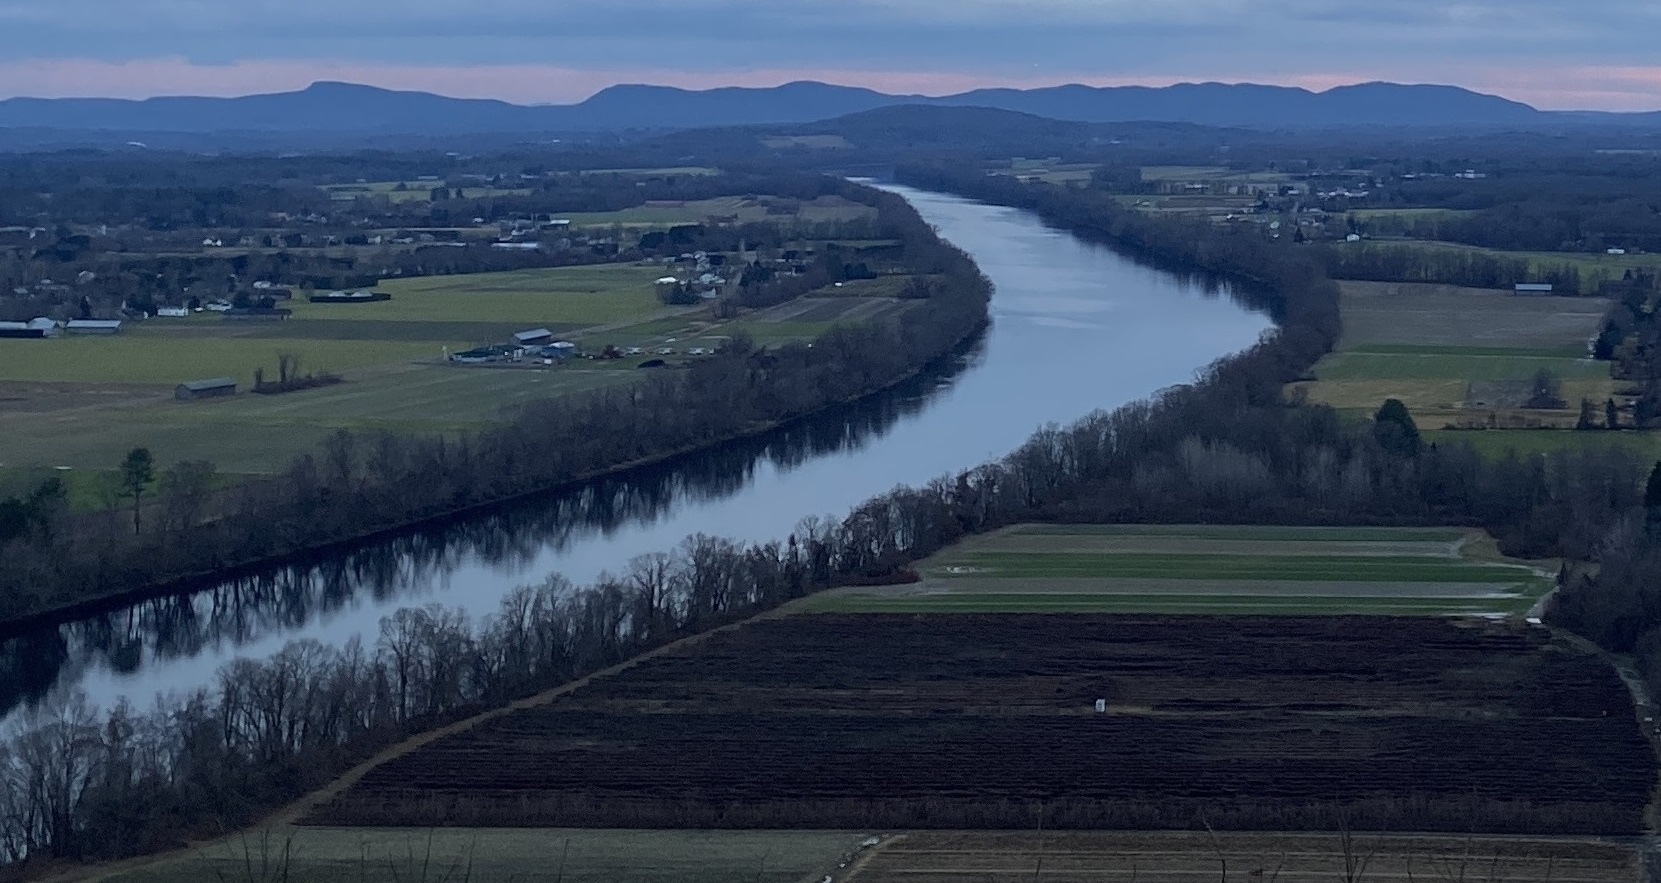 Connecticut River winding through farmland. View is from Mount Sugarloaf in the north, with the Holyoke Range visible in the south.